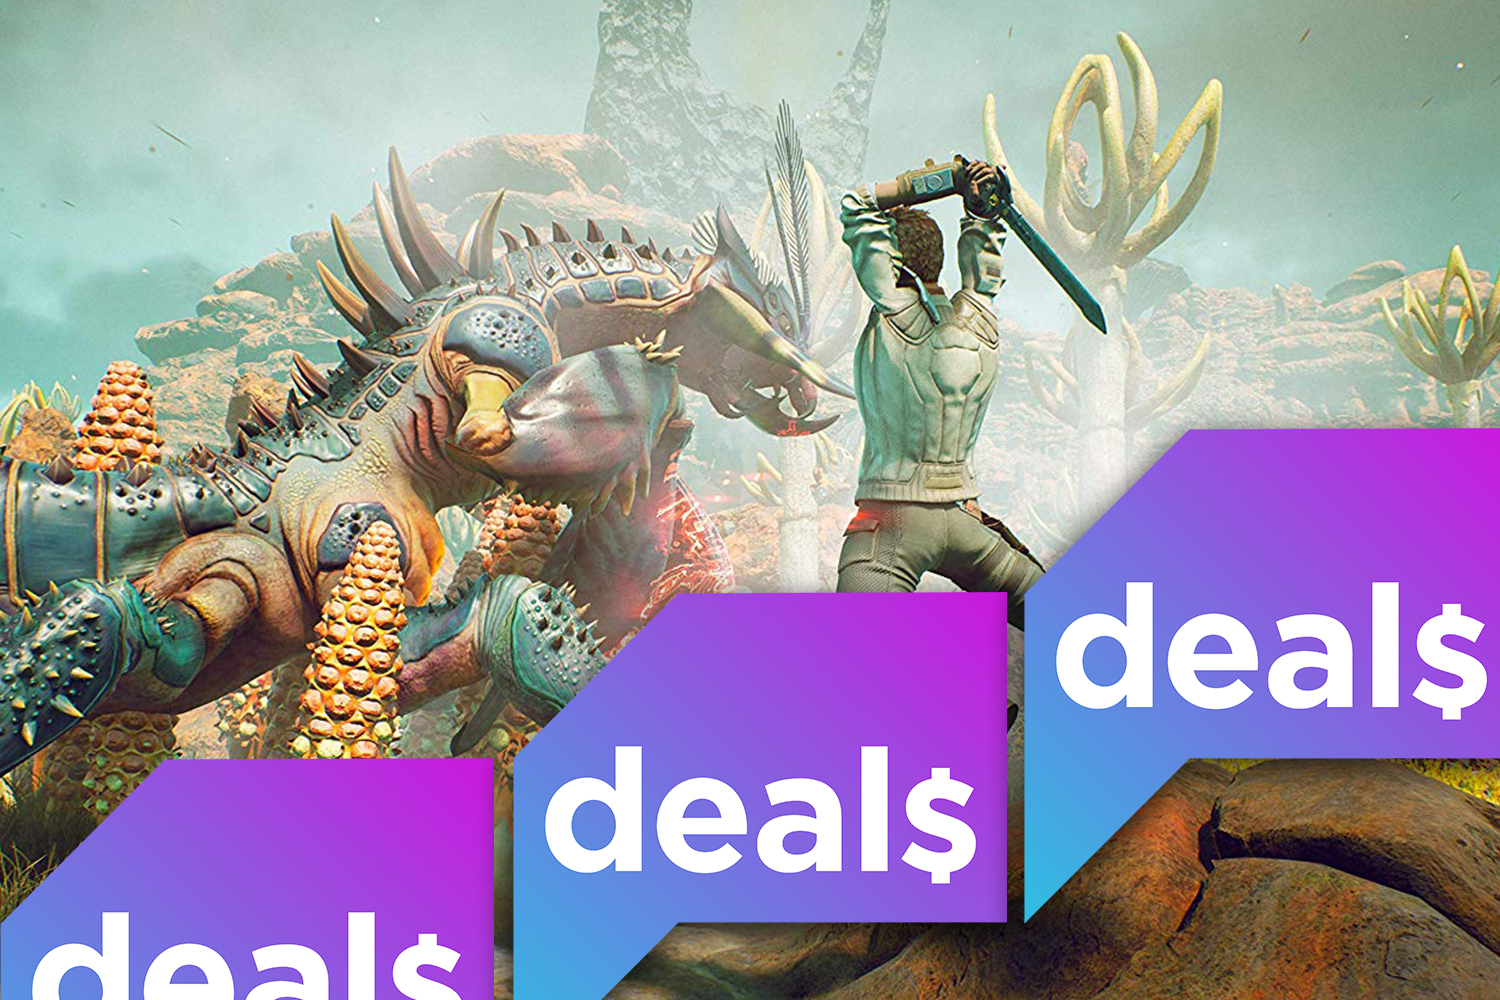 The Polygon Deals laid over a screenshot from The Outer Worlds